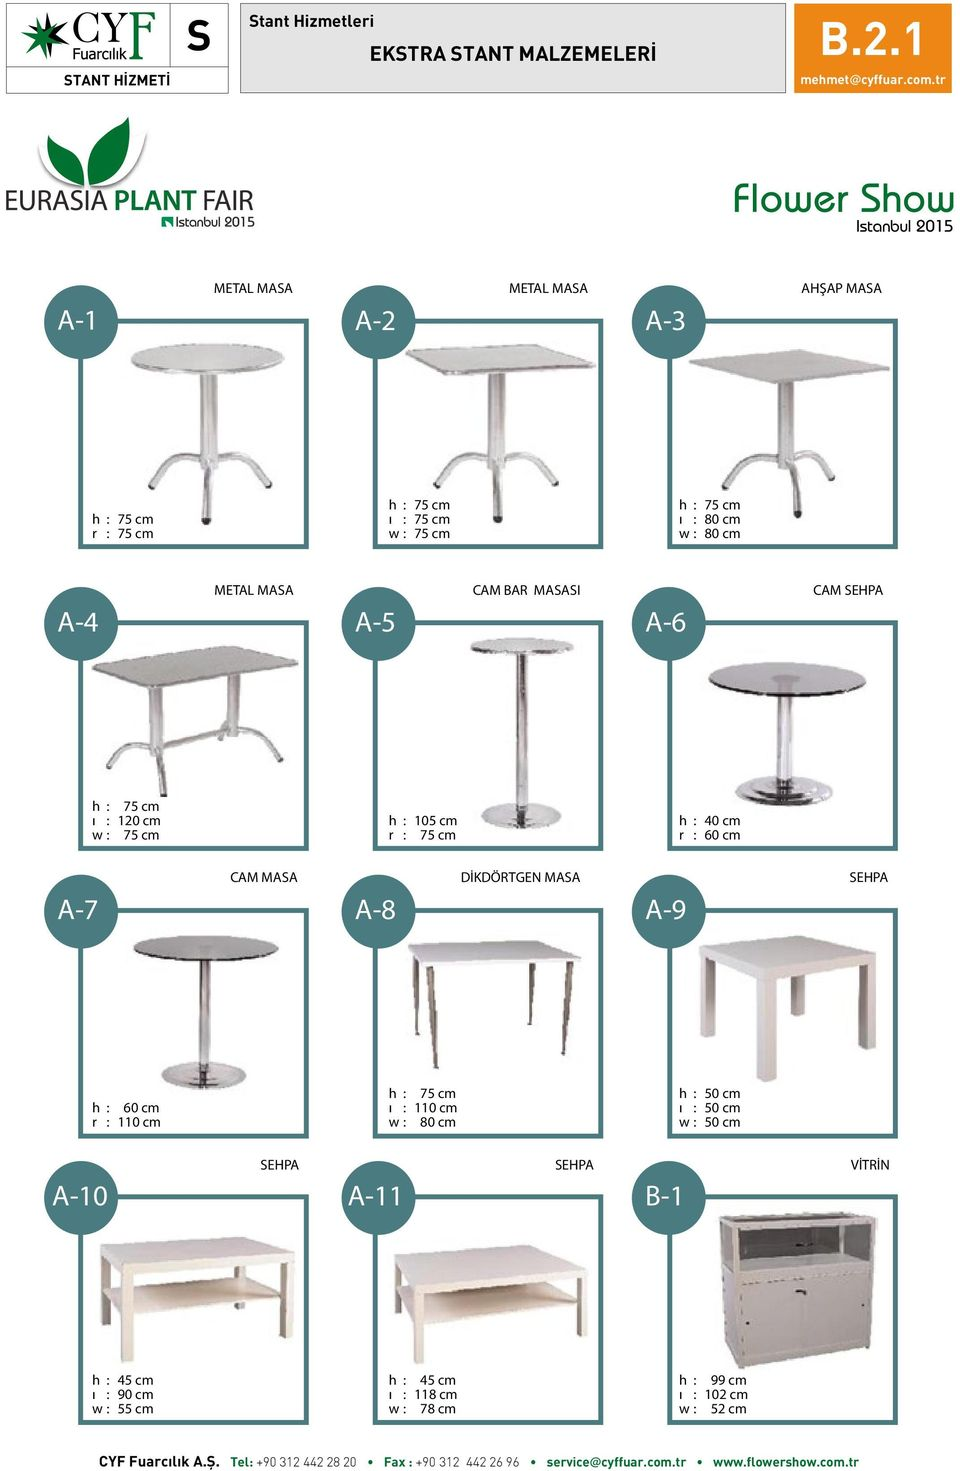 TABLE A-5 CAM BAR MASASI GLASS BAR TABLE A-6 CAM SEHPA CLASS COFFEE TABLE h : 75 cm ı : 120 cm w : 75 cm h : 105 cm r : 75 cm h : 40 cm r : 60 cm A-7 CAM MASA GLASS TABLE A-8 DİKDÖRTGEN MASA SQUARE